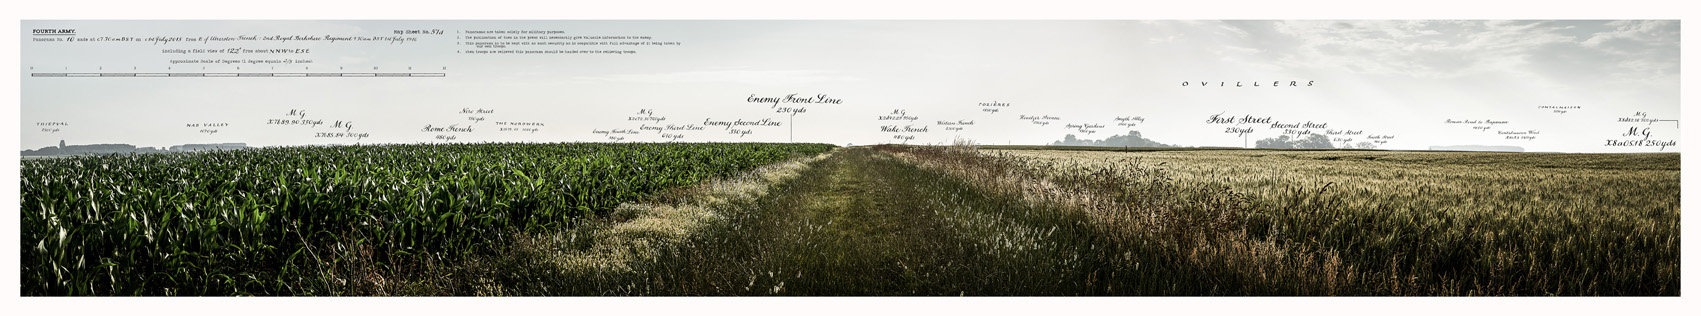 PANORAMA NO.10: OVILLERS